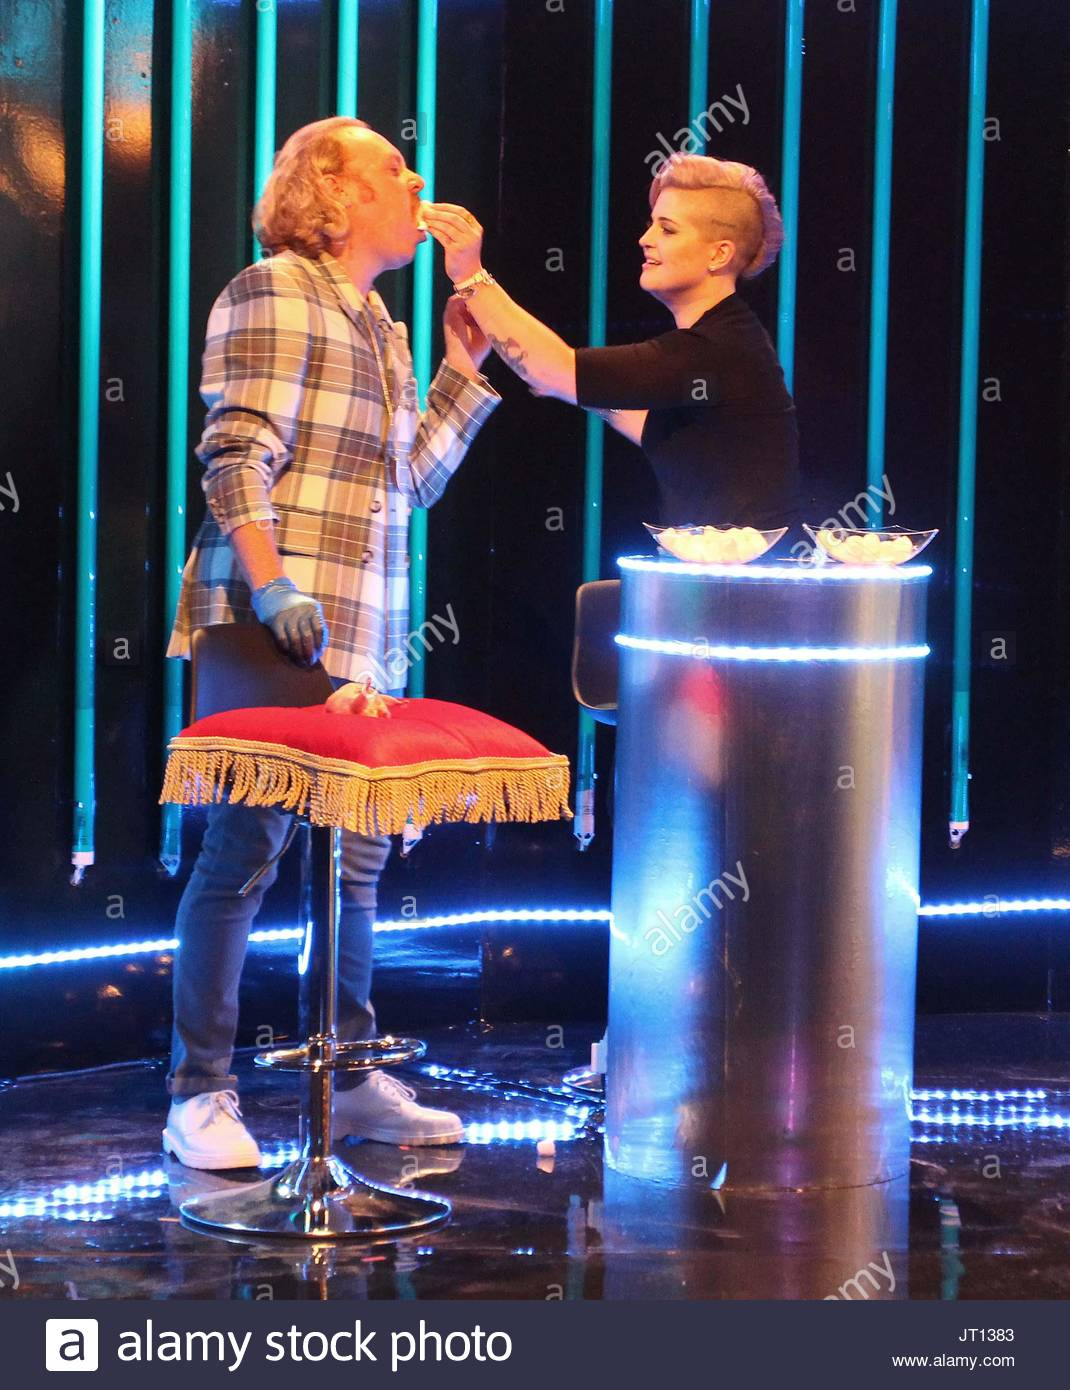 List of Celebrity Juice episodes - WikiVisually